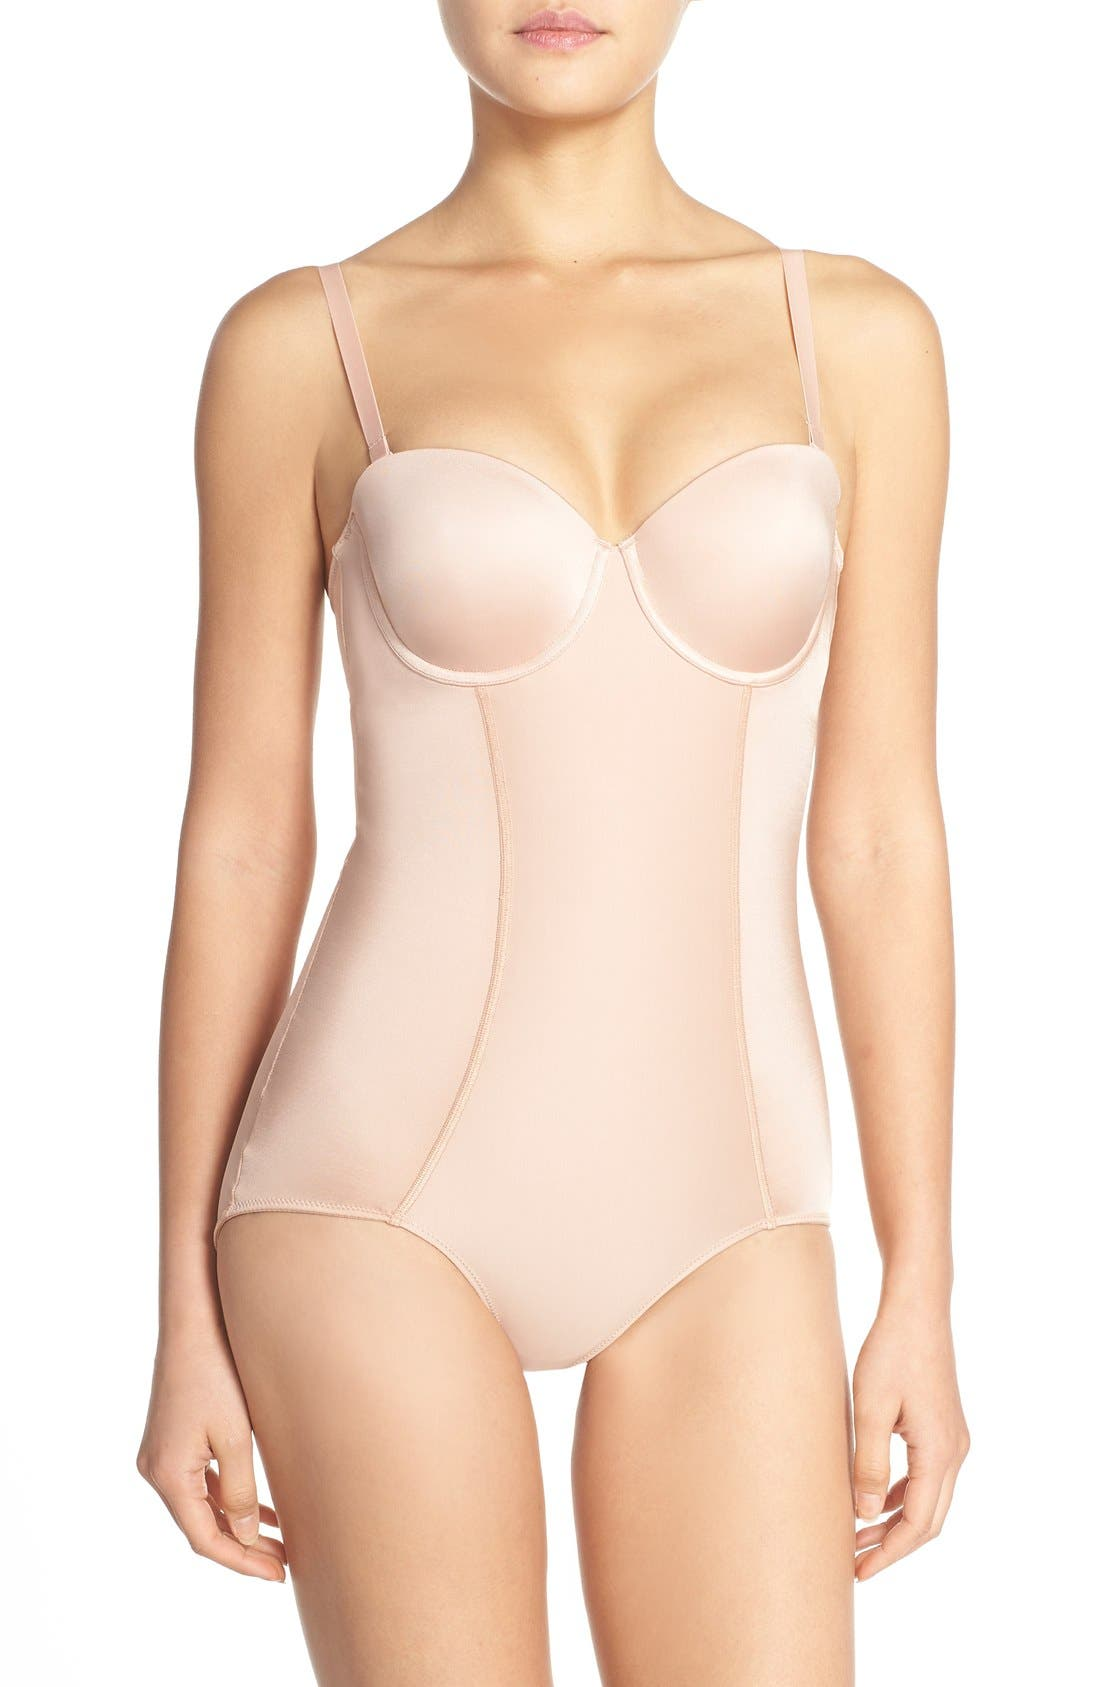 Alternate Image 1 Selected - SPANX® Boostie-Yay Slimming Bodysuit with Bra Top